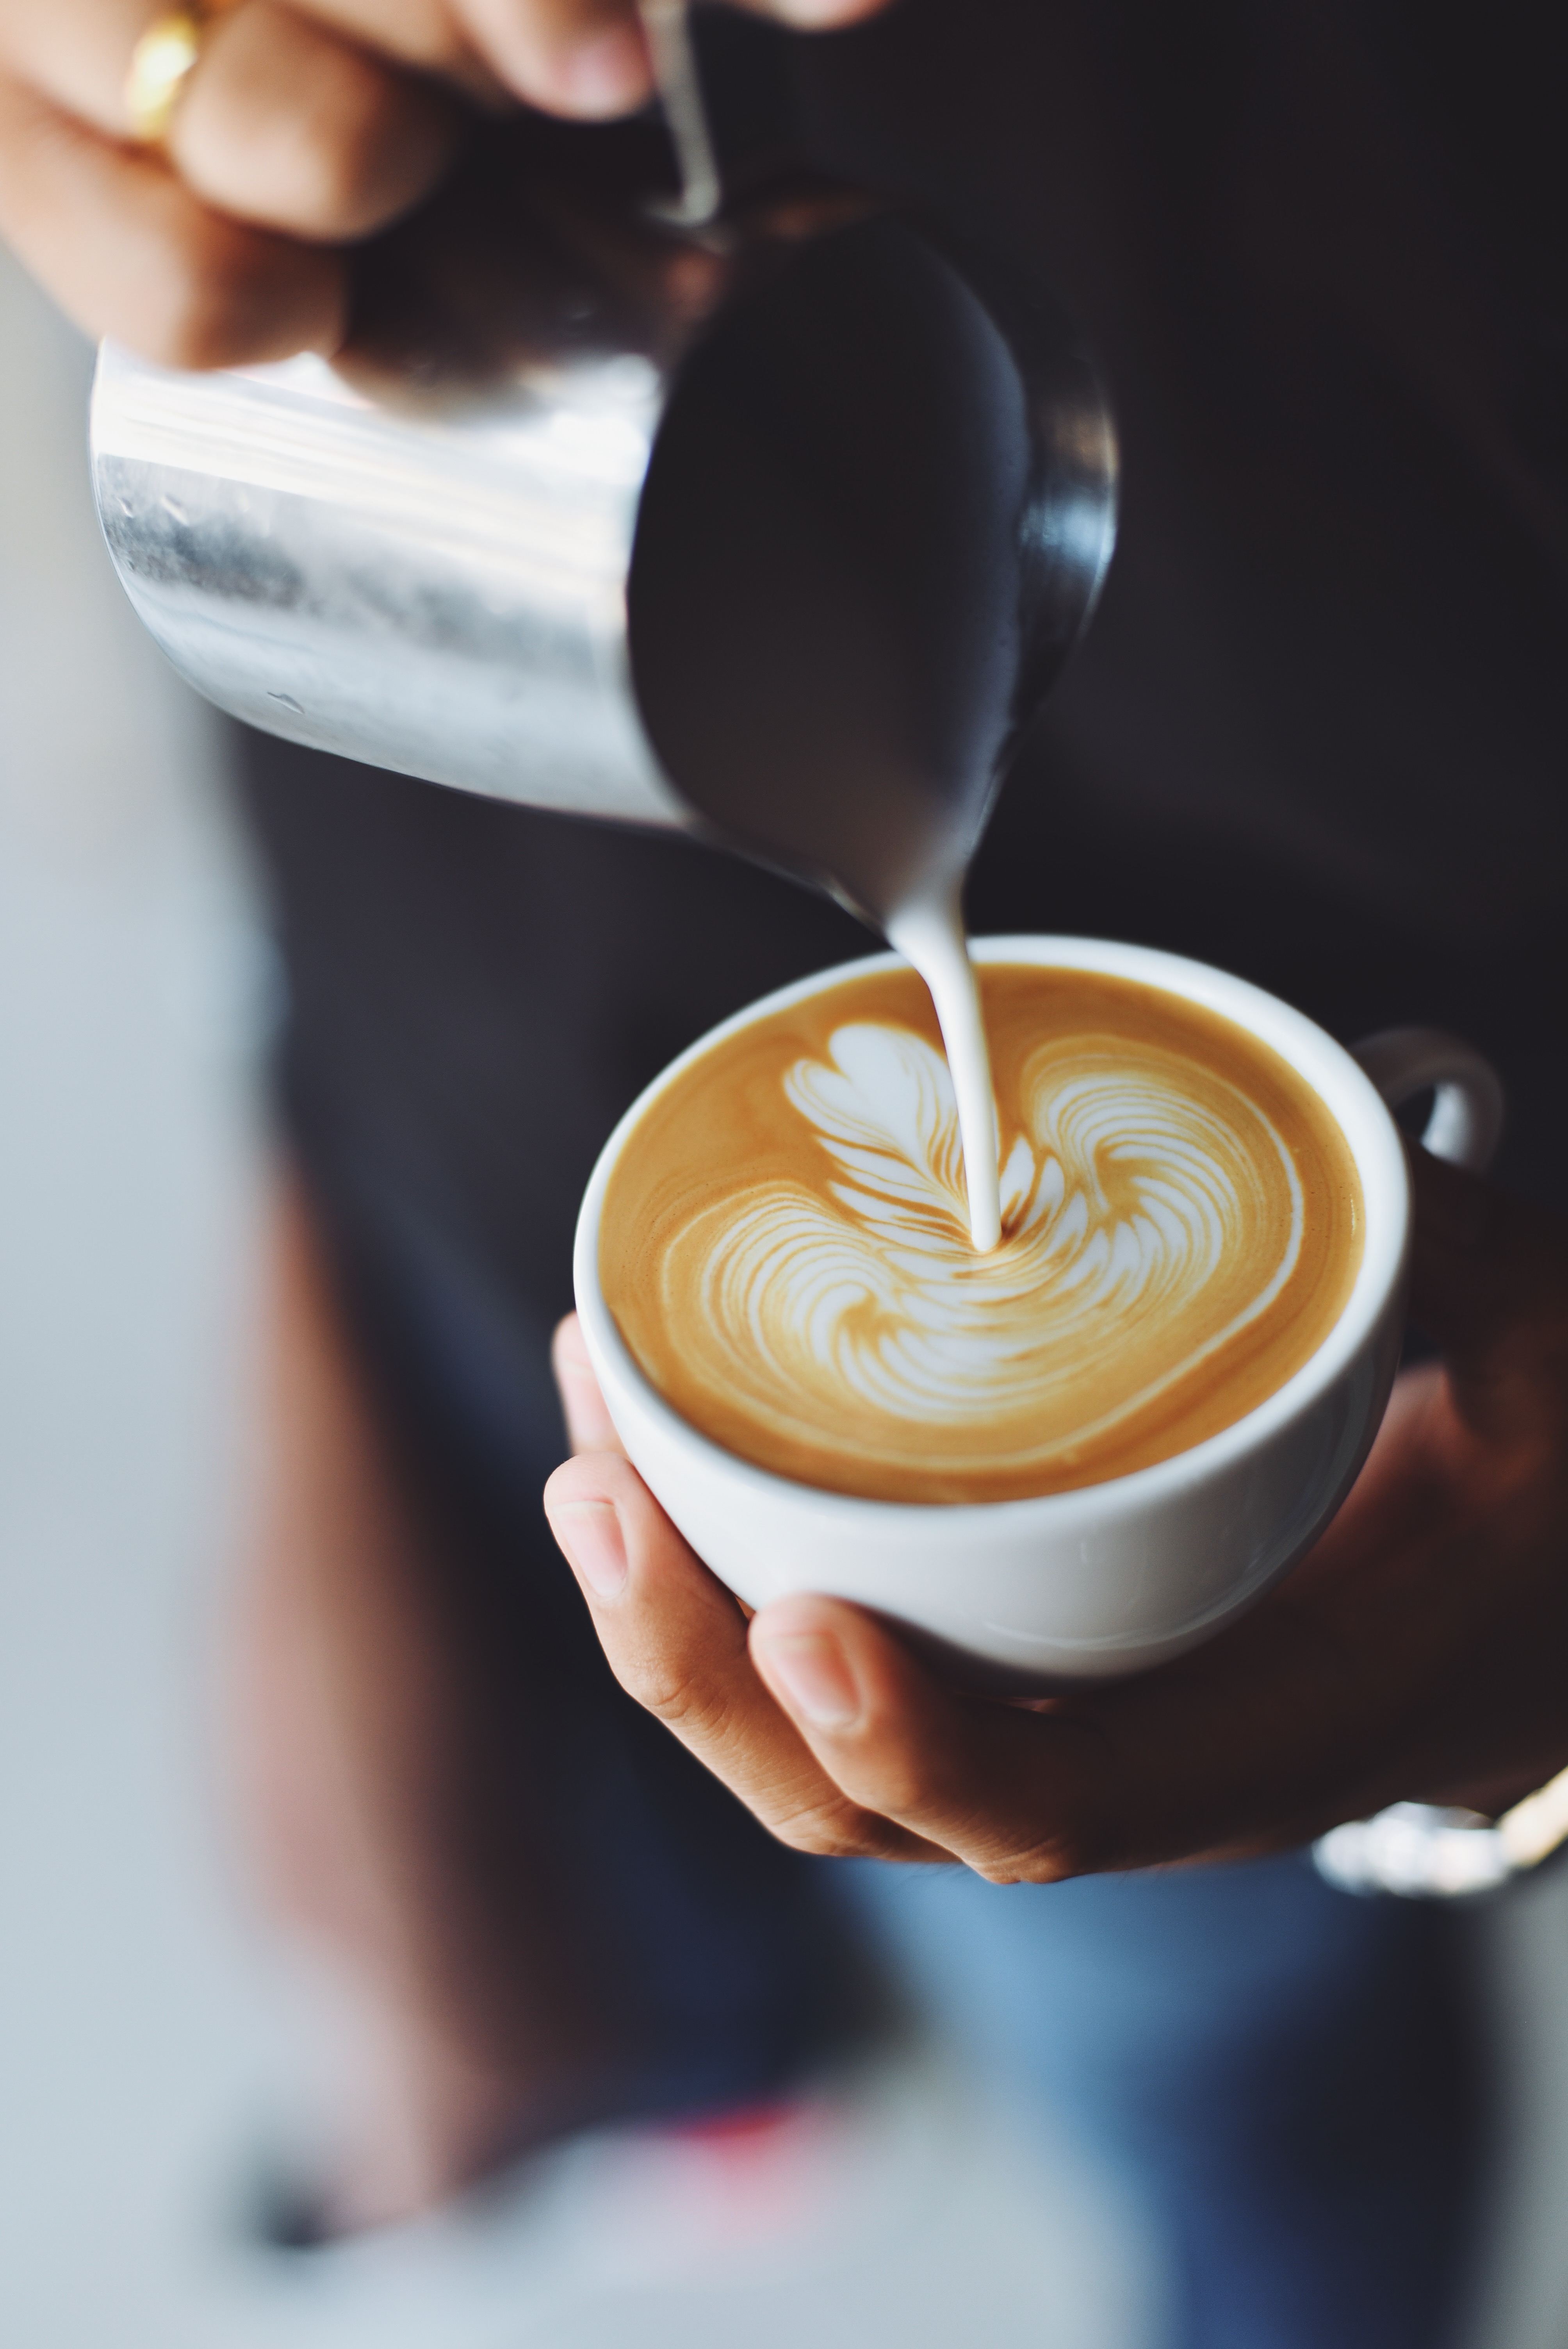 Cup Of Coffee And A Book 183 Free Stock Photo